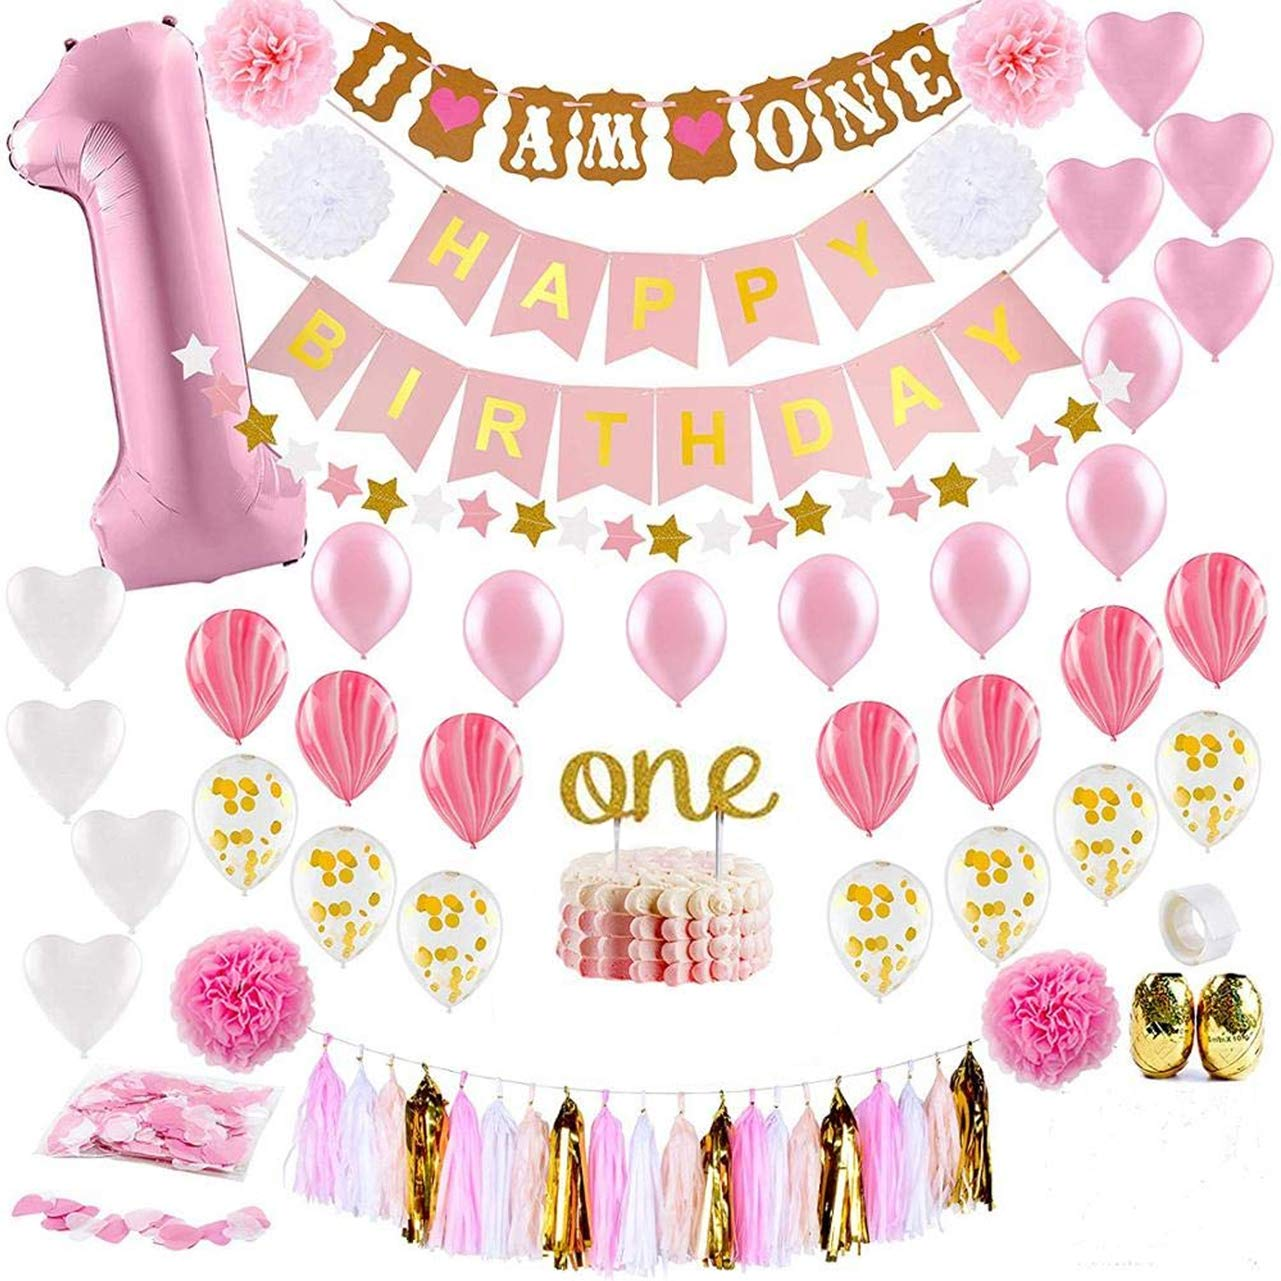 Girls First Birthday Decorations Items Combo 65pcs For Baby Girl 1st Bday Decor Photo Booth Backdrop Decoration Materials 1st Birth Day Party Decor Stylish Latest Pink White Birtgday Set Party Propz Online Party Supply